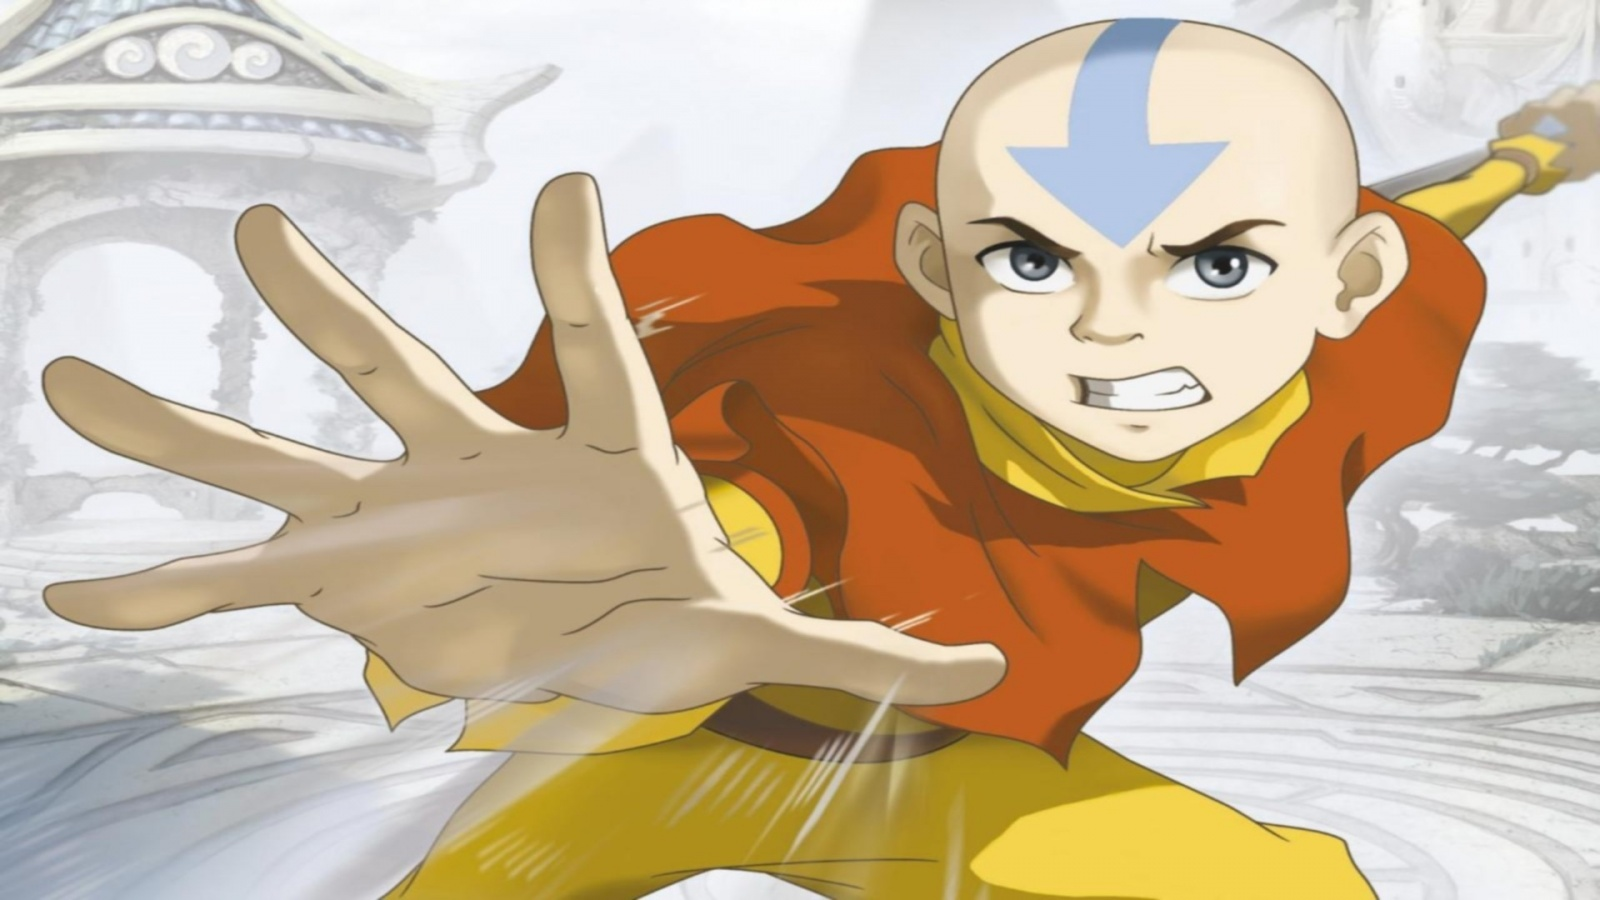 avatar airbender wallpaper